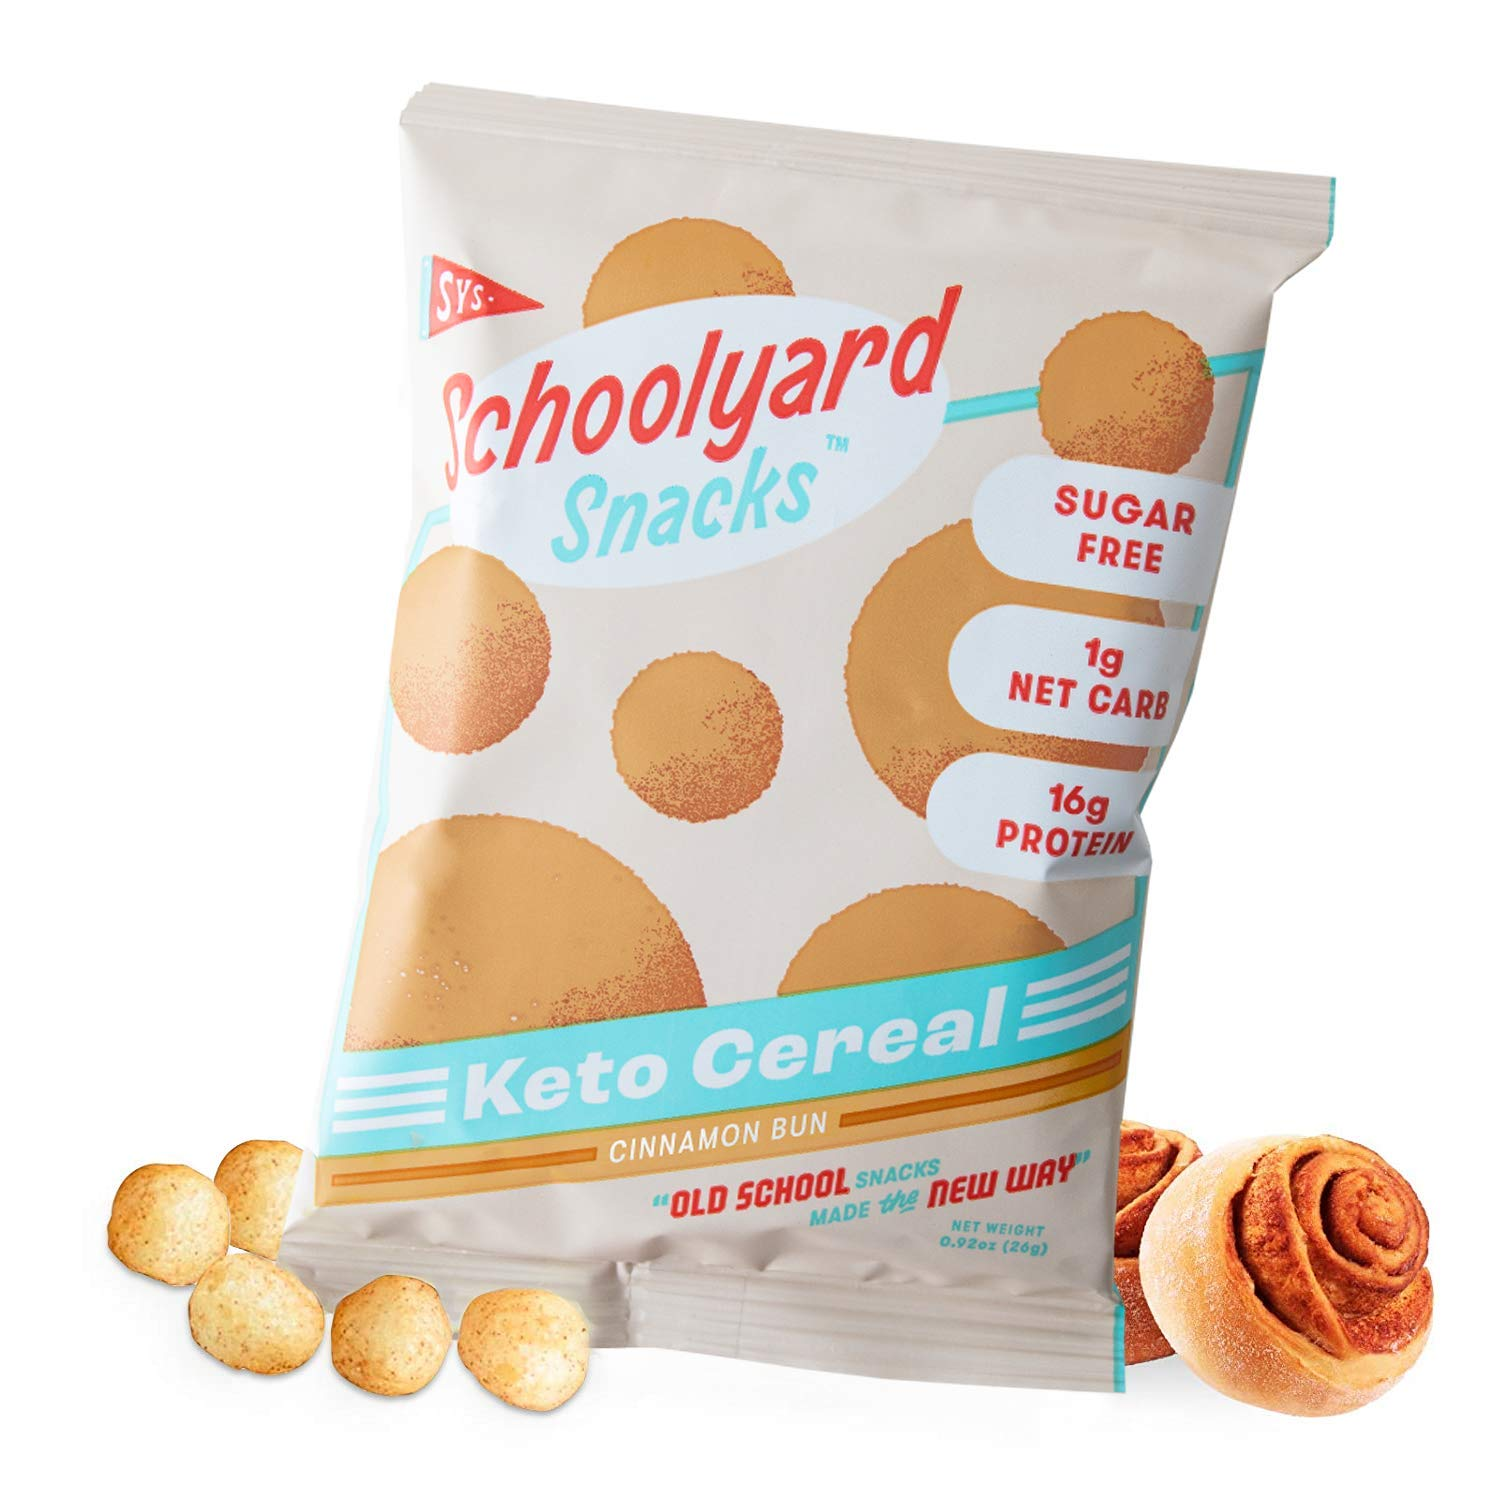 Schoolyard Snacks Low Carb Keto Cereal - Cinnamon Bun - High Protein - All Natural - Gluten & Grain-Free - Healthy Breakfast - Low Calorie Food - 12 Pack Single Serve Bags - 100 Calories Snack